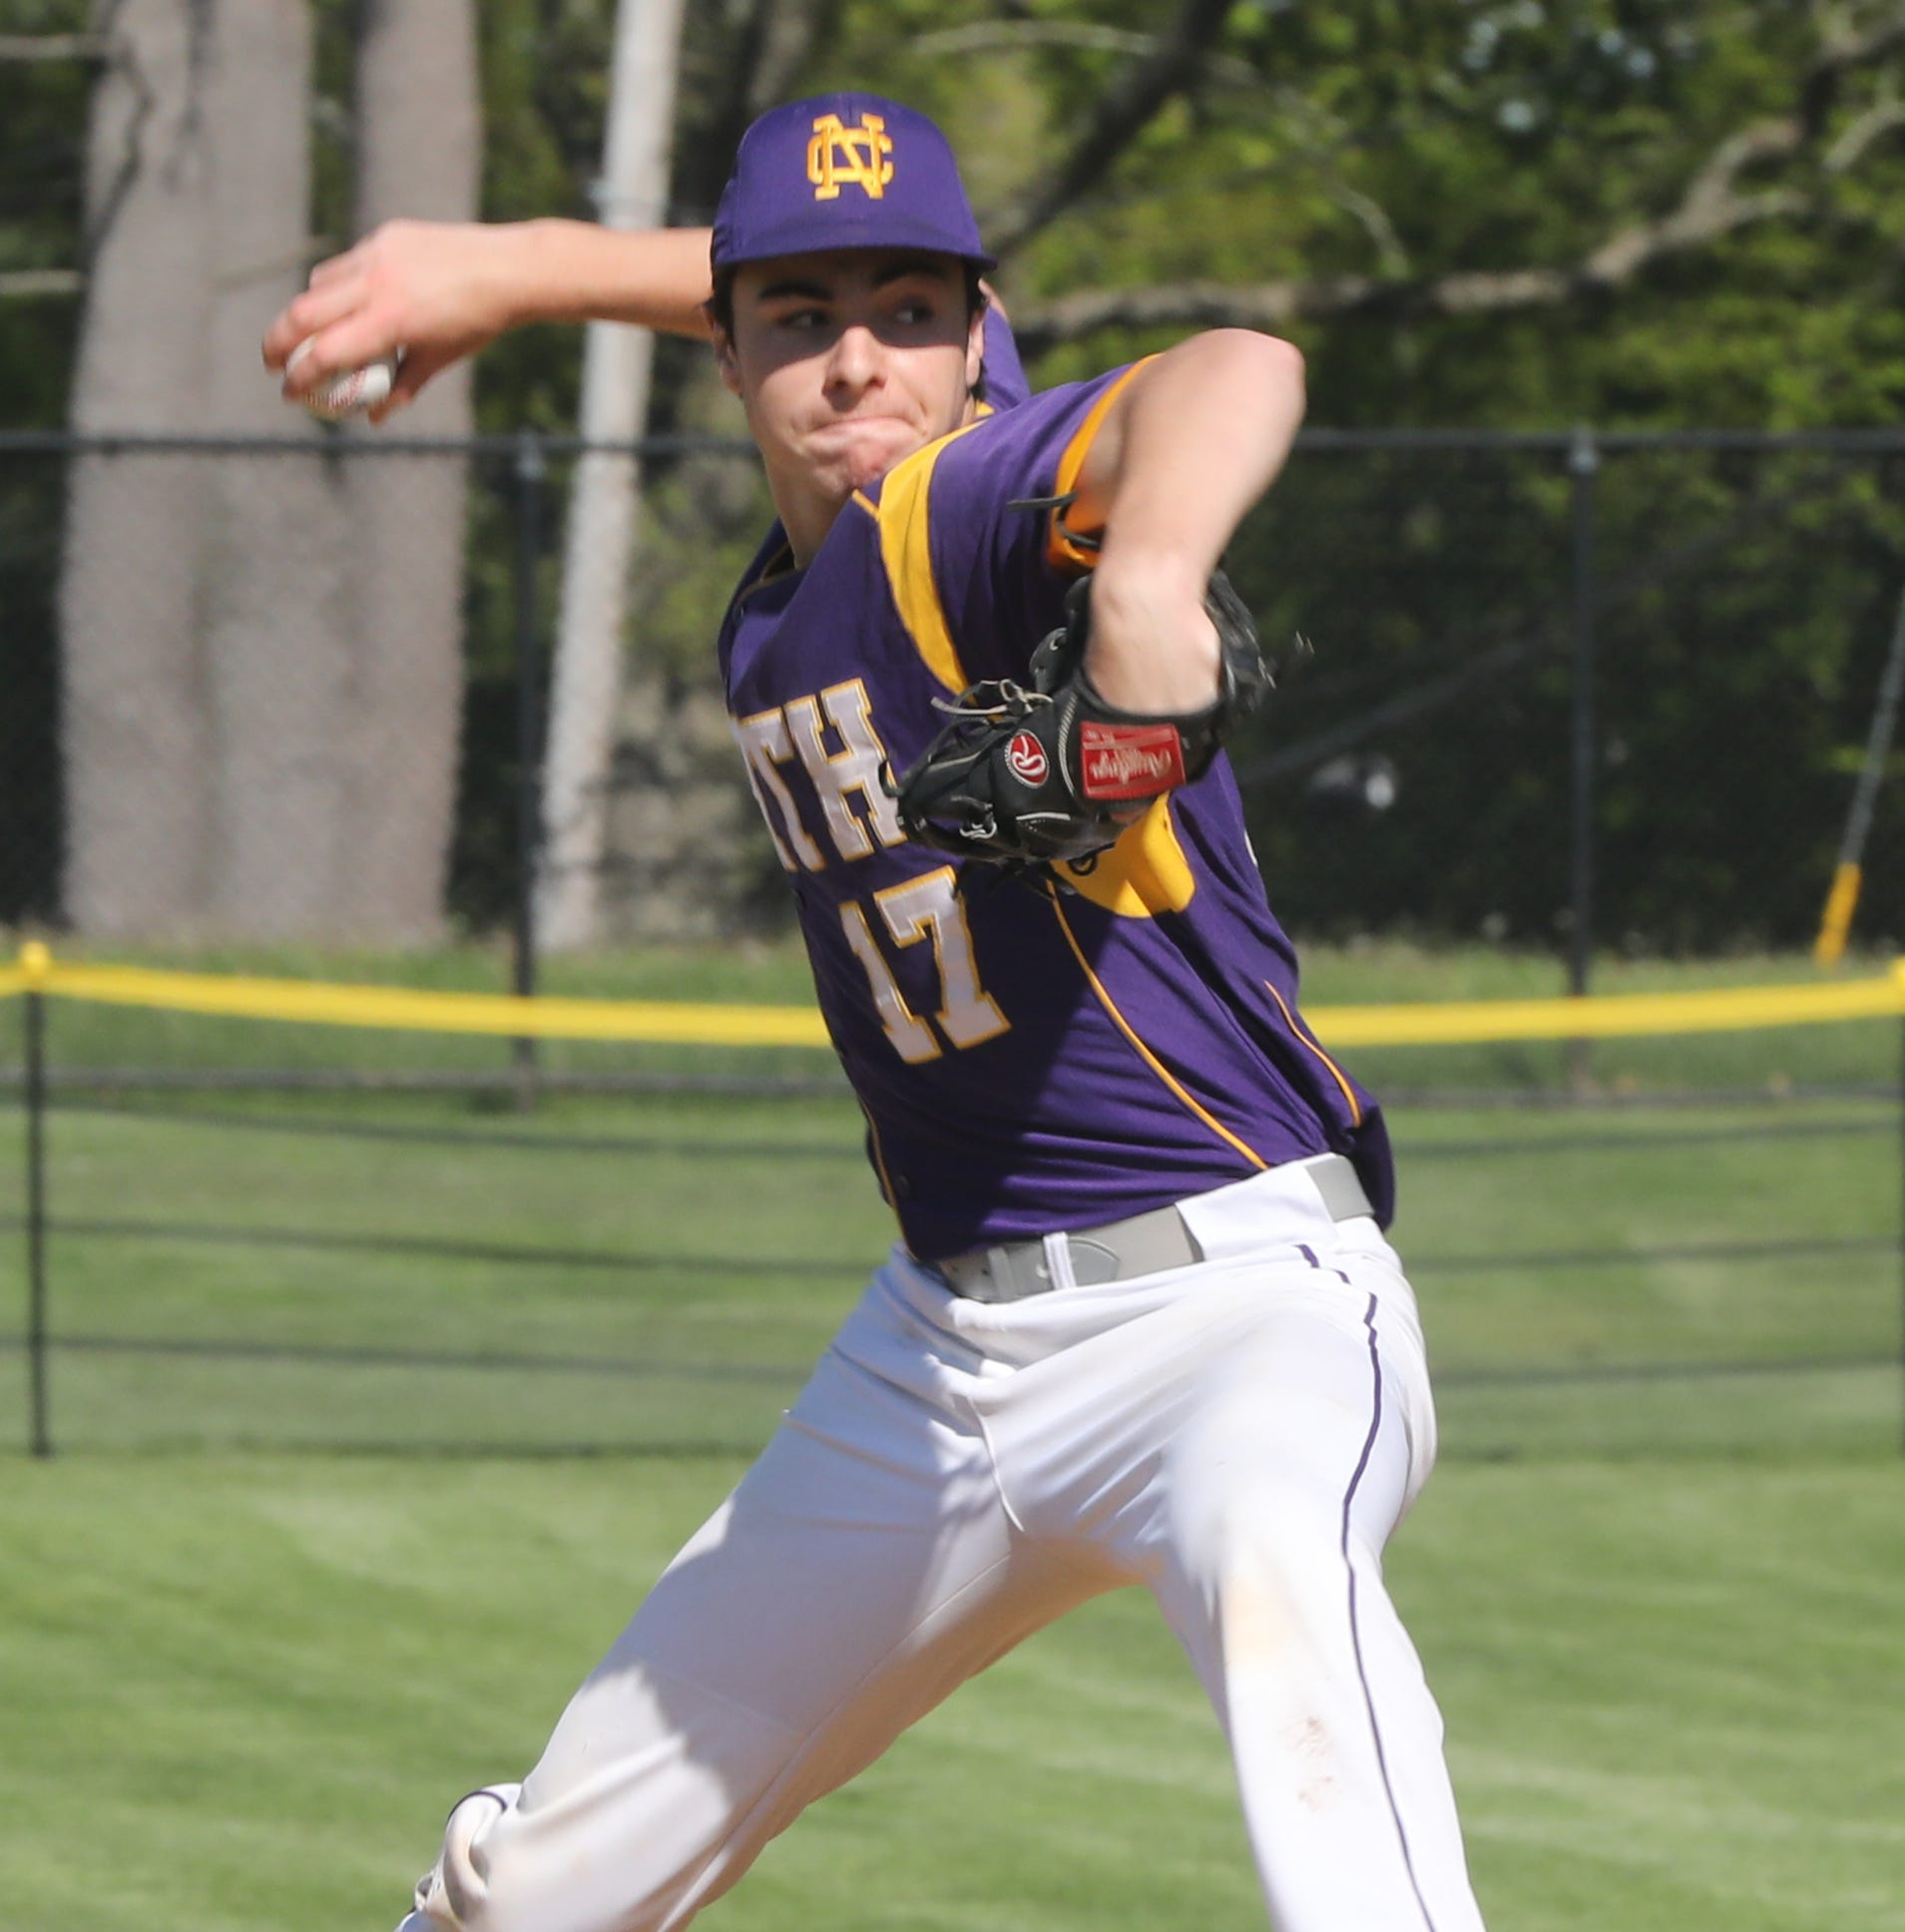 Baseball: Clarkstown North earns breakthrough win behind sophomore ace